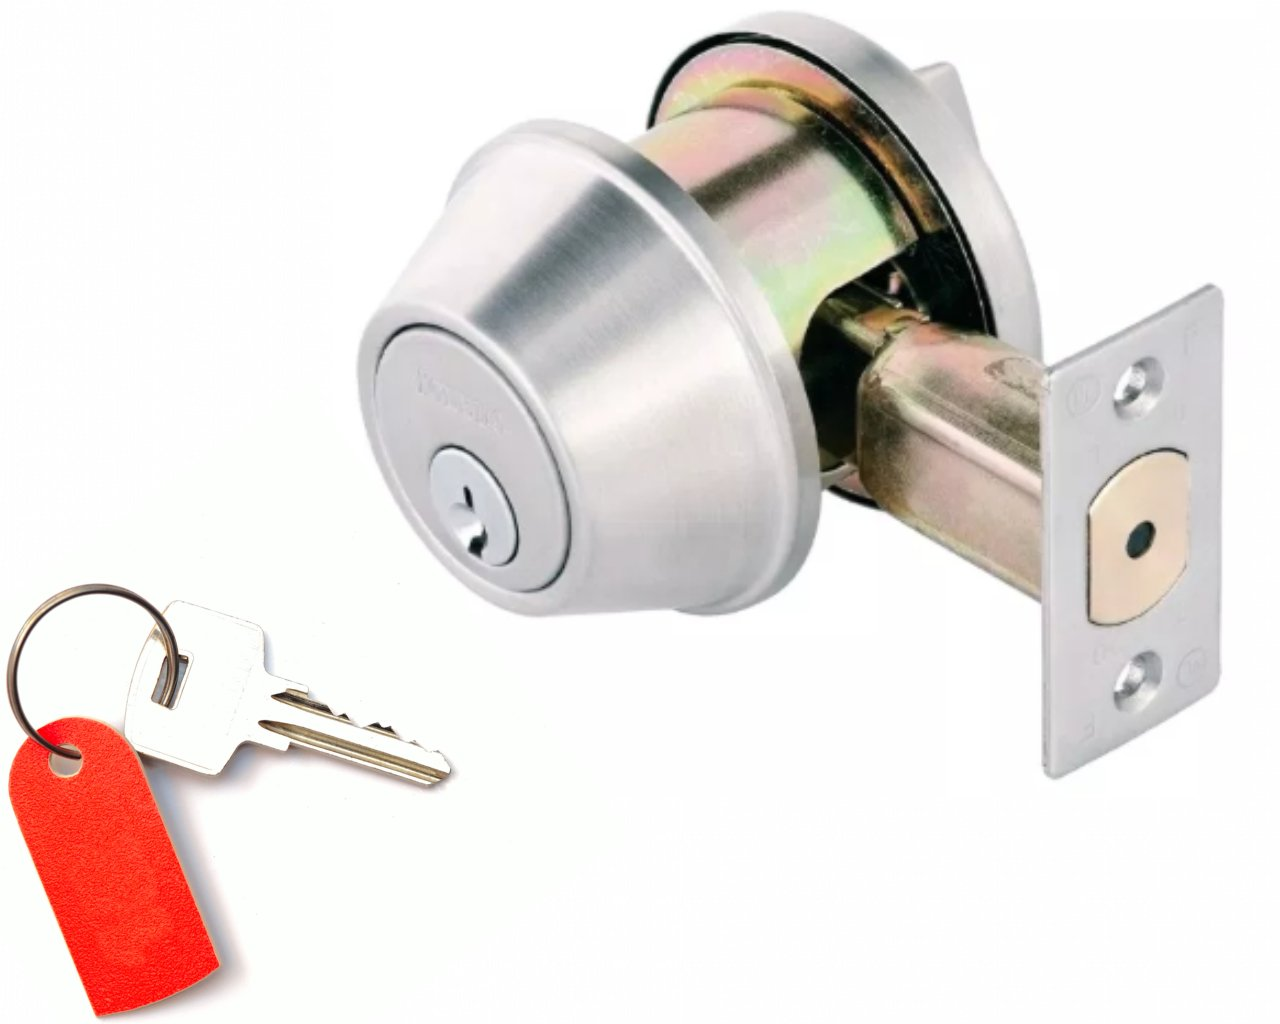 Door Dead Bolts : Single Cylinder Keyed - Commercial Grade 2 : Restricted High Security Key Lock : Keyed Alike When Several Purchased Per Order : By TOLEDO